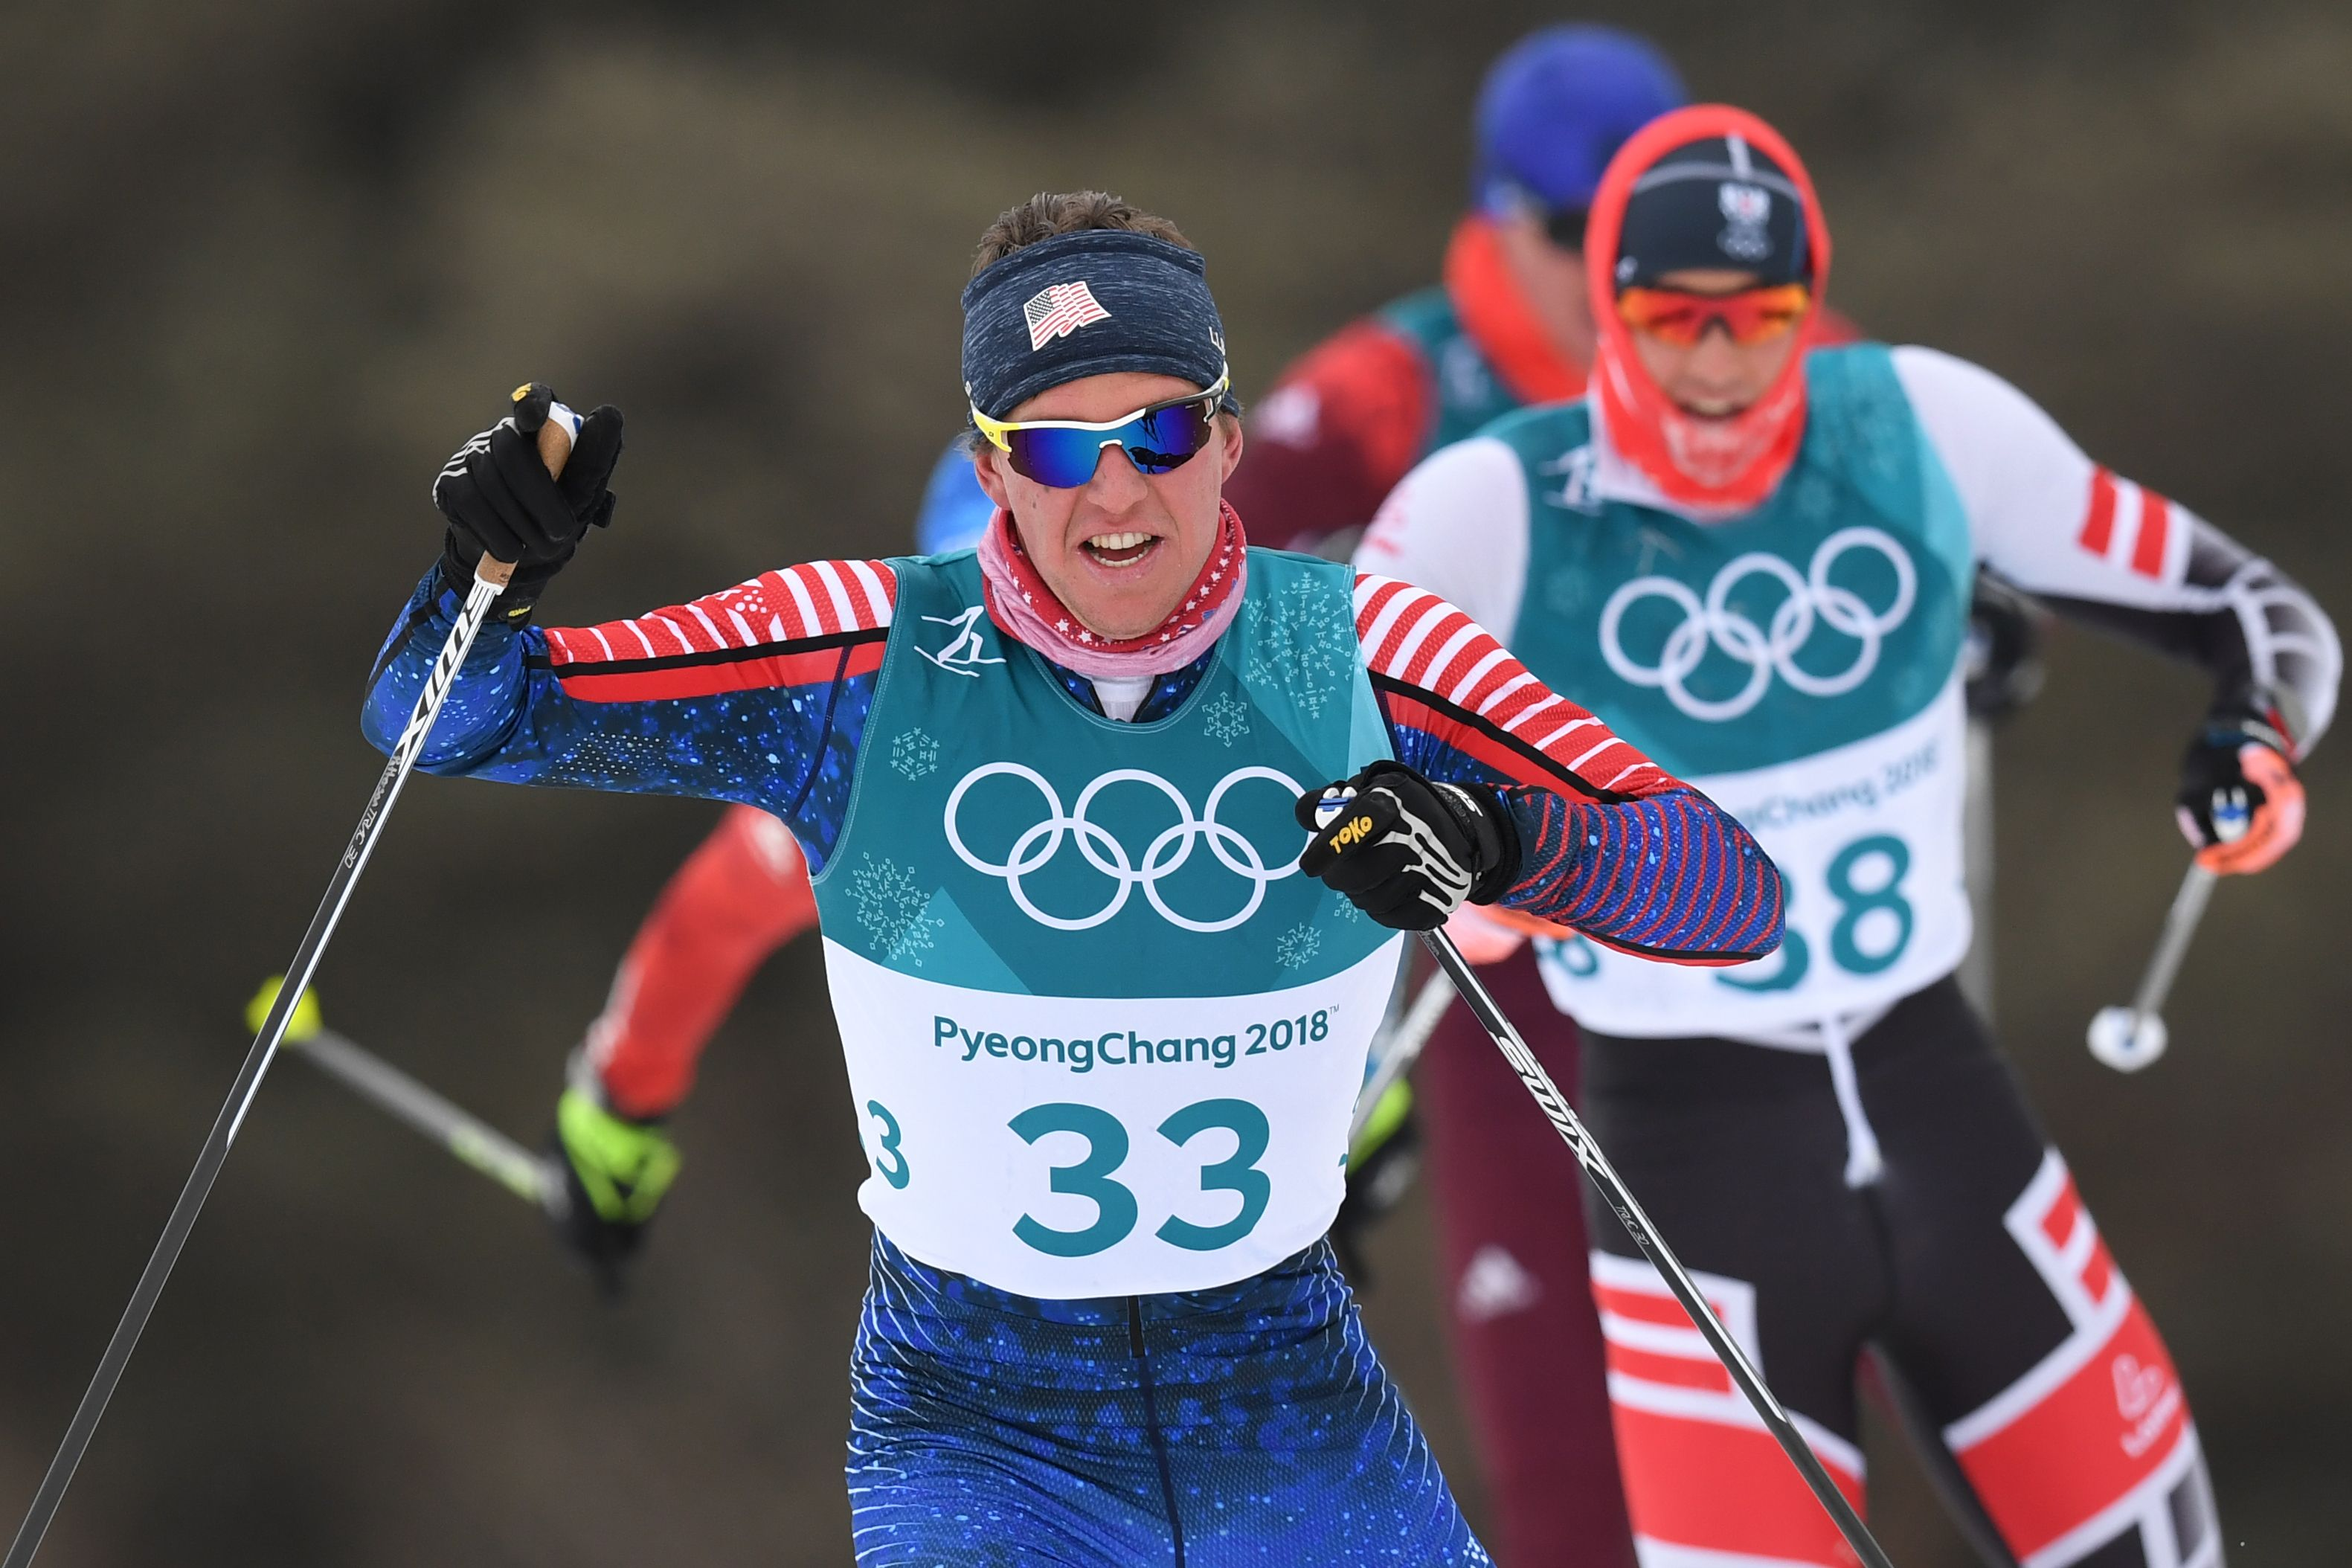 Scott Patterson competes in the men's skiathlon at the Alpensia cross country ski center Sunday. (Getty Images/AFP - Franck Fife)